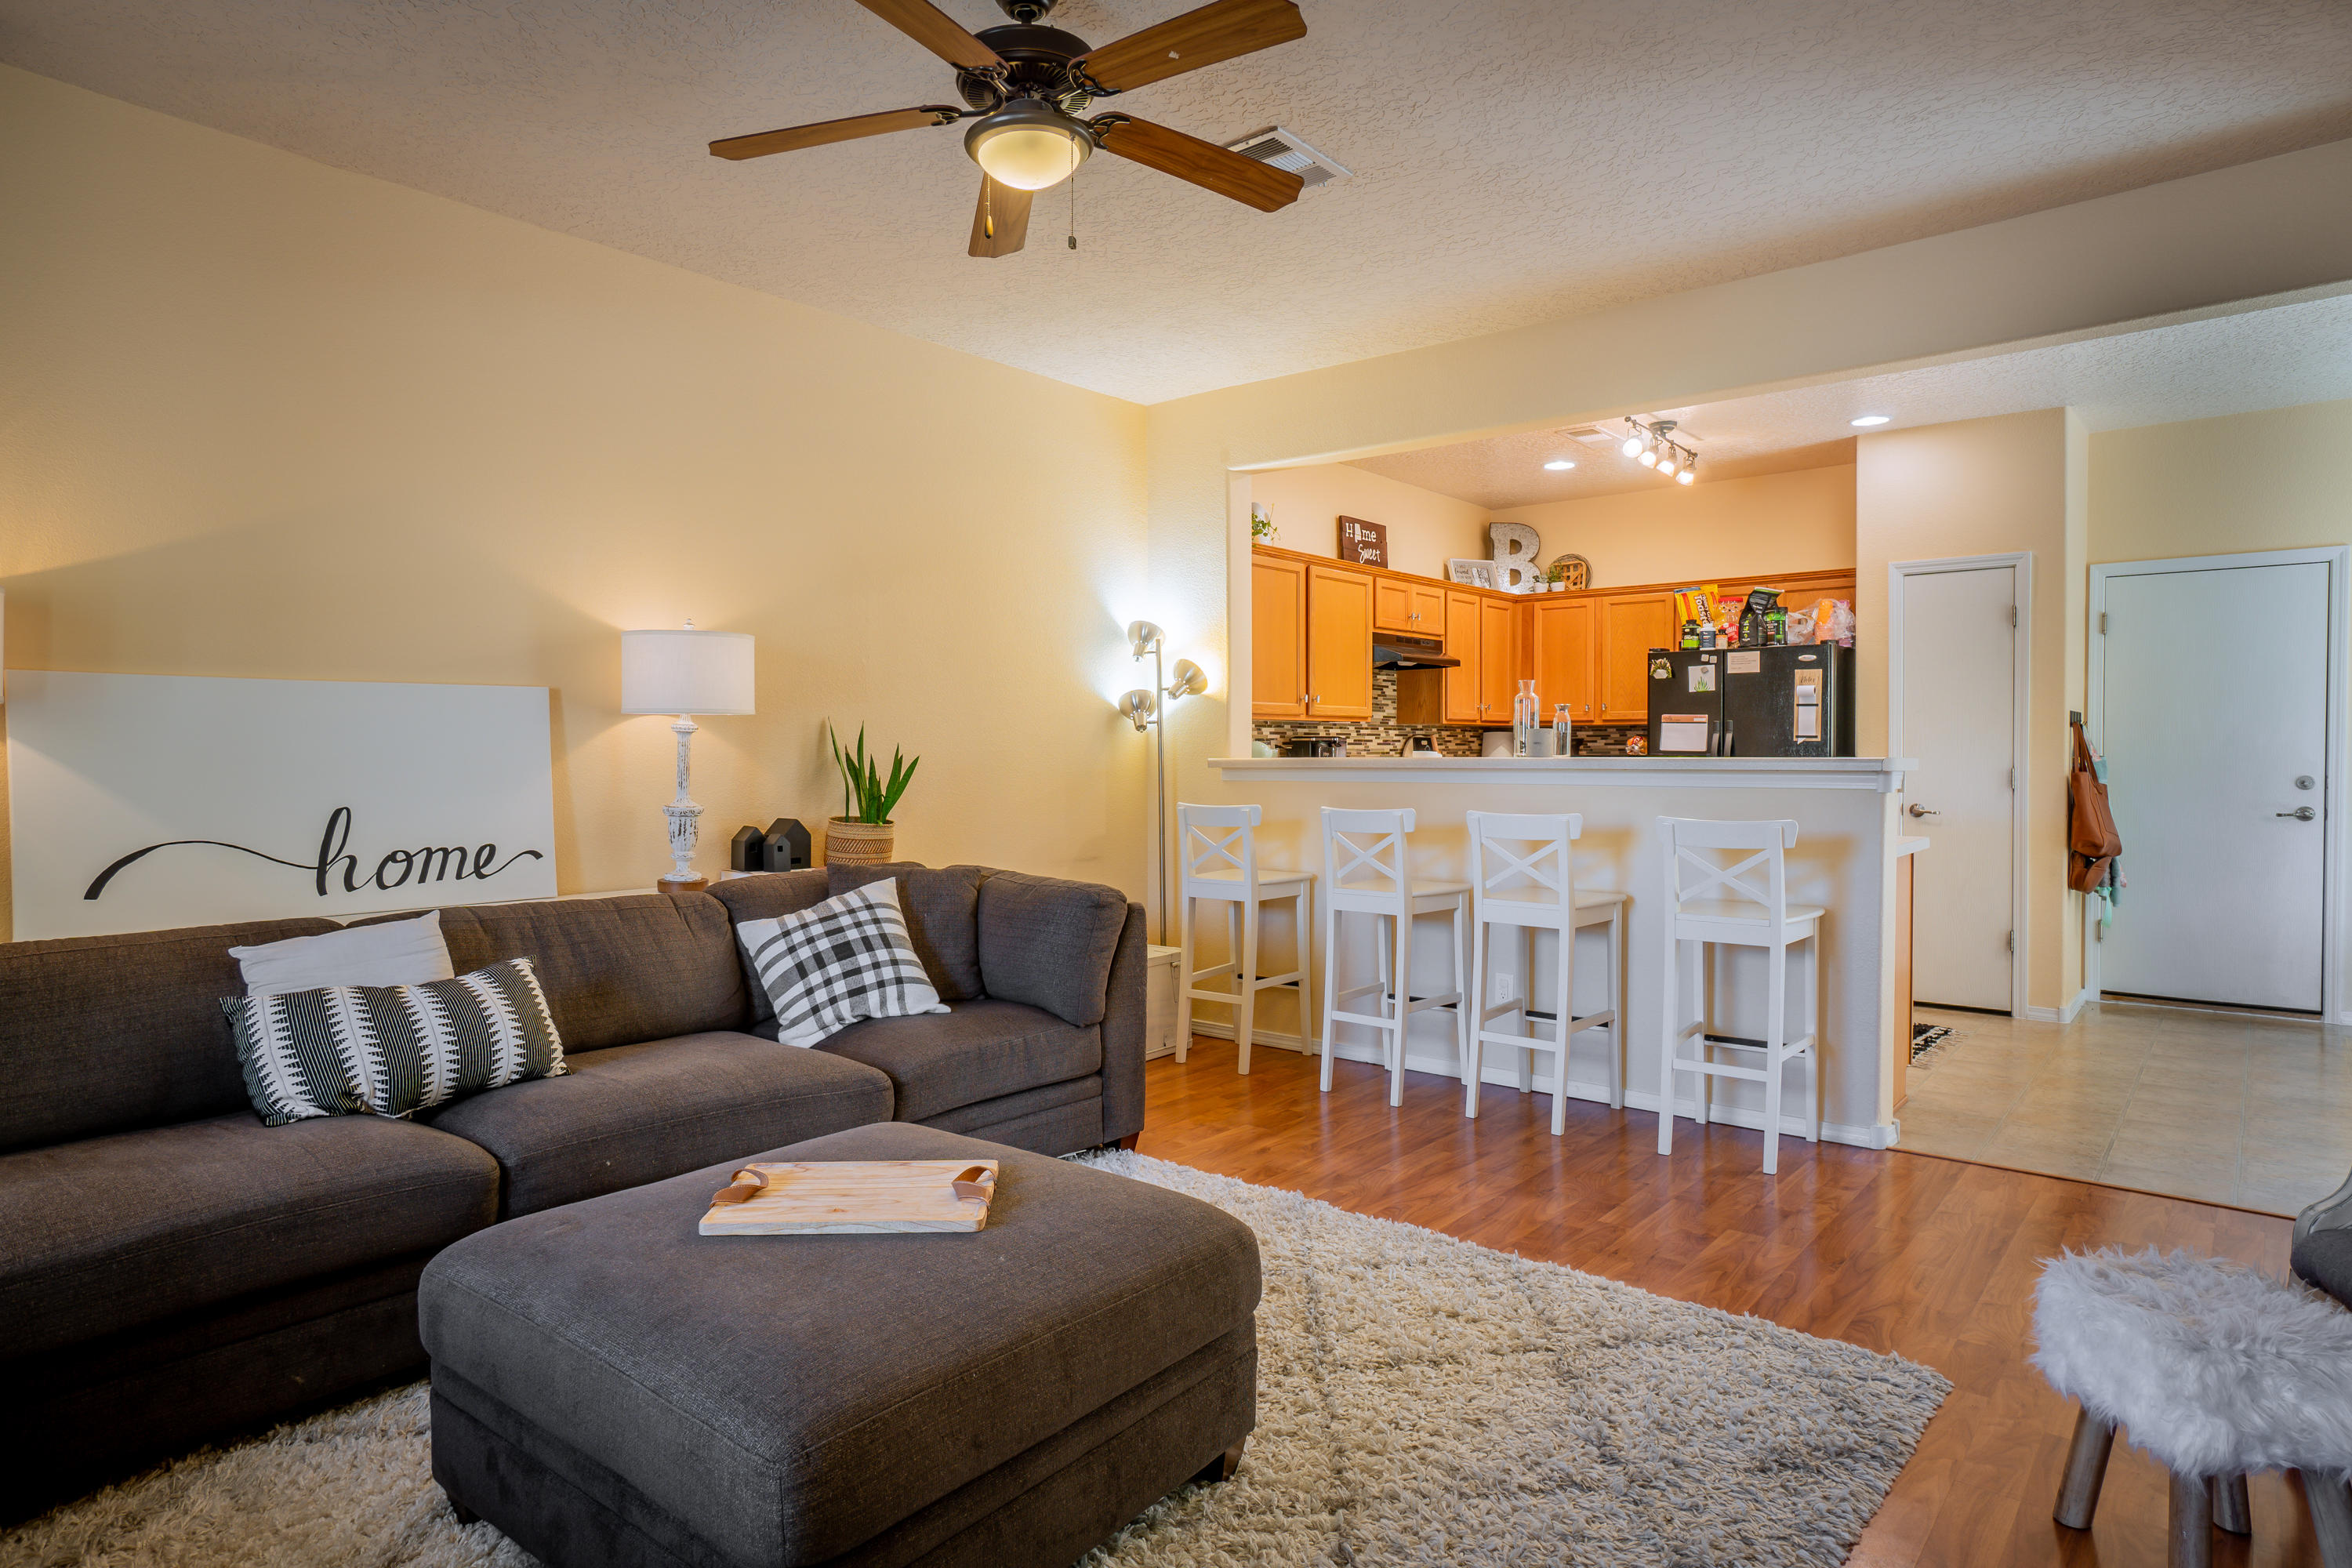 Gorgeous townhouse located in the highly sought after Presidio gated community!  This townhouse is located just minutes from ABQ Uptown and prime shopping centers.  Quick I-40 access, minutes from the Sandia foothills and national labs.  The property features a beautiful 2 bed, 2 bath, 2 car attached garage floor plan surrounded by gorgeous landscape.  Tankless hot water heater, refrigerated air and tasteful updates. Contact your favorite realtor for a showing!